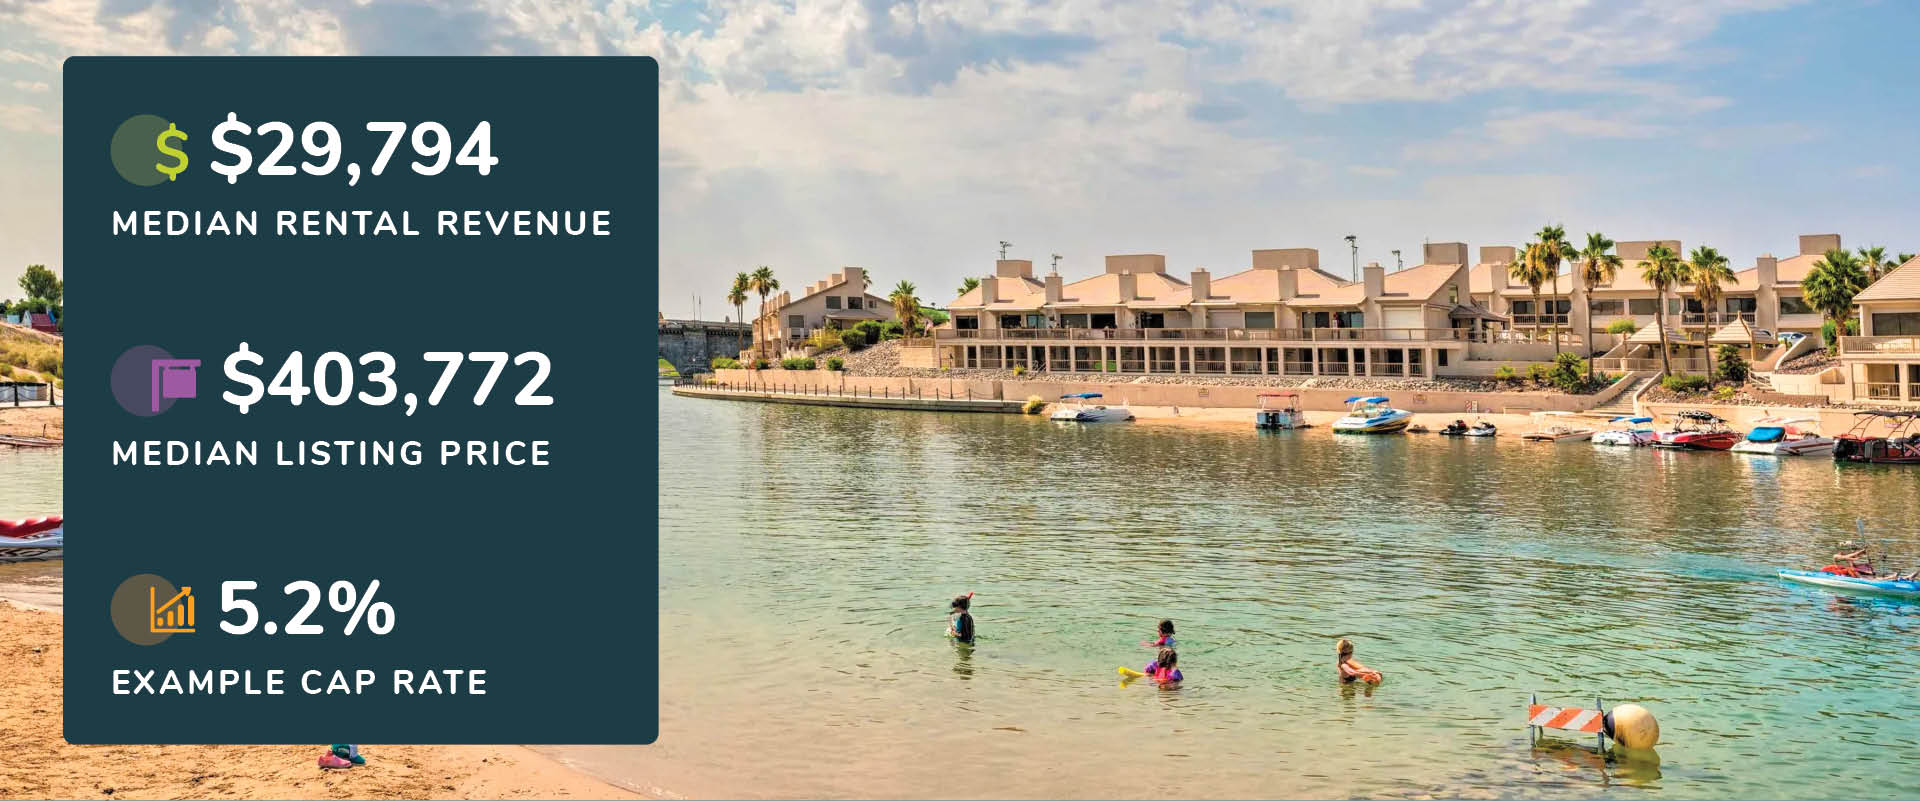 Graphic showing Lake Havasu, Arizona rental revenue, listing price, and cap rate with a picture of a lakefront condos